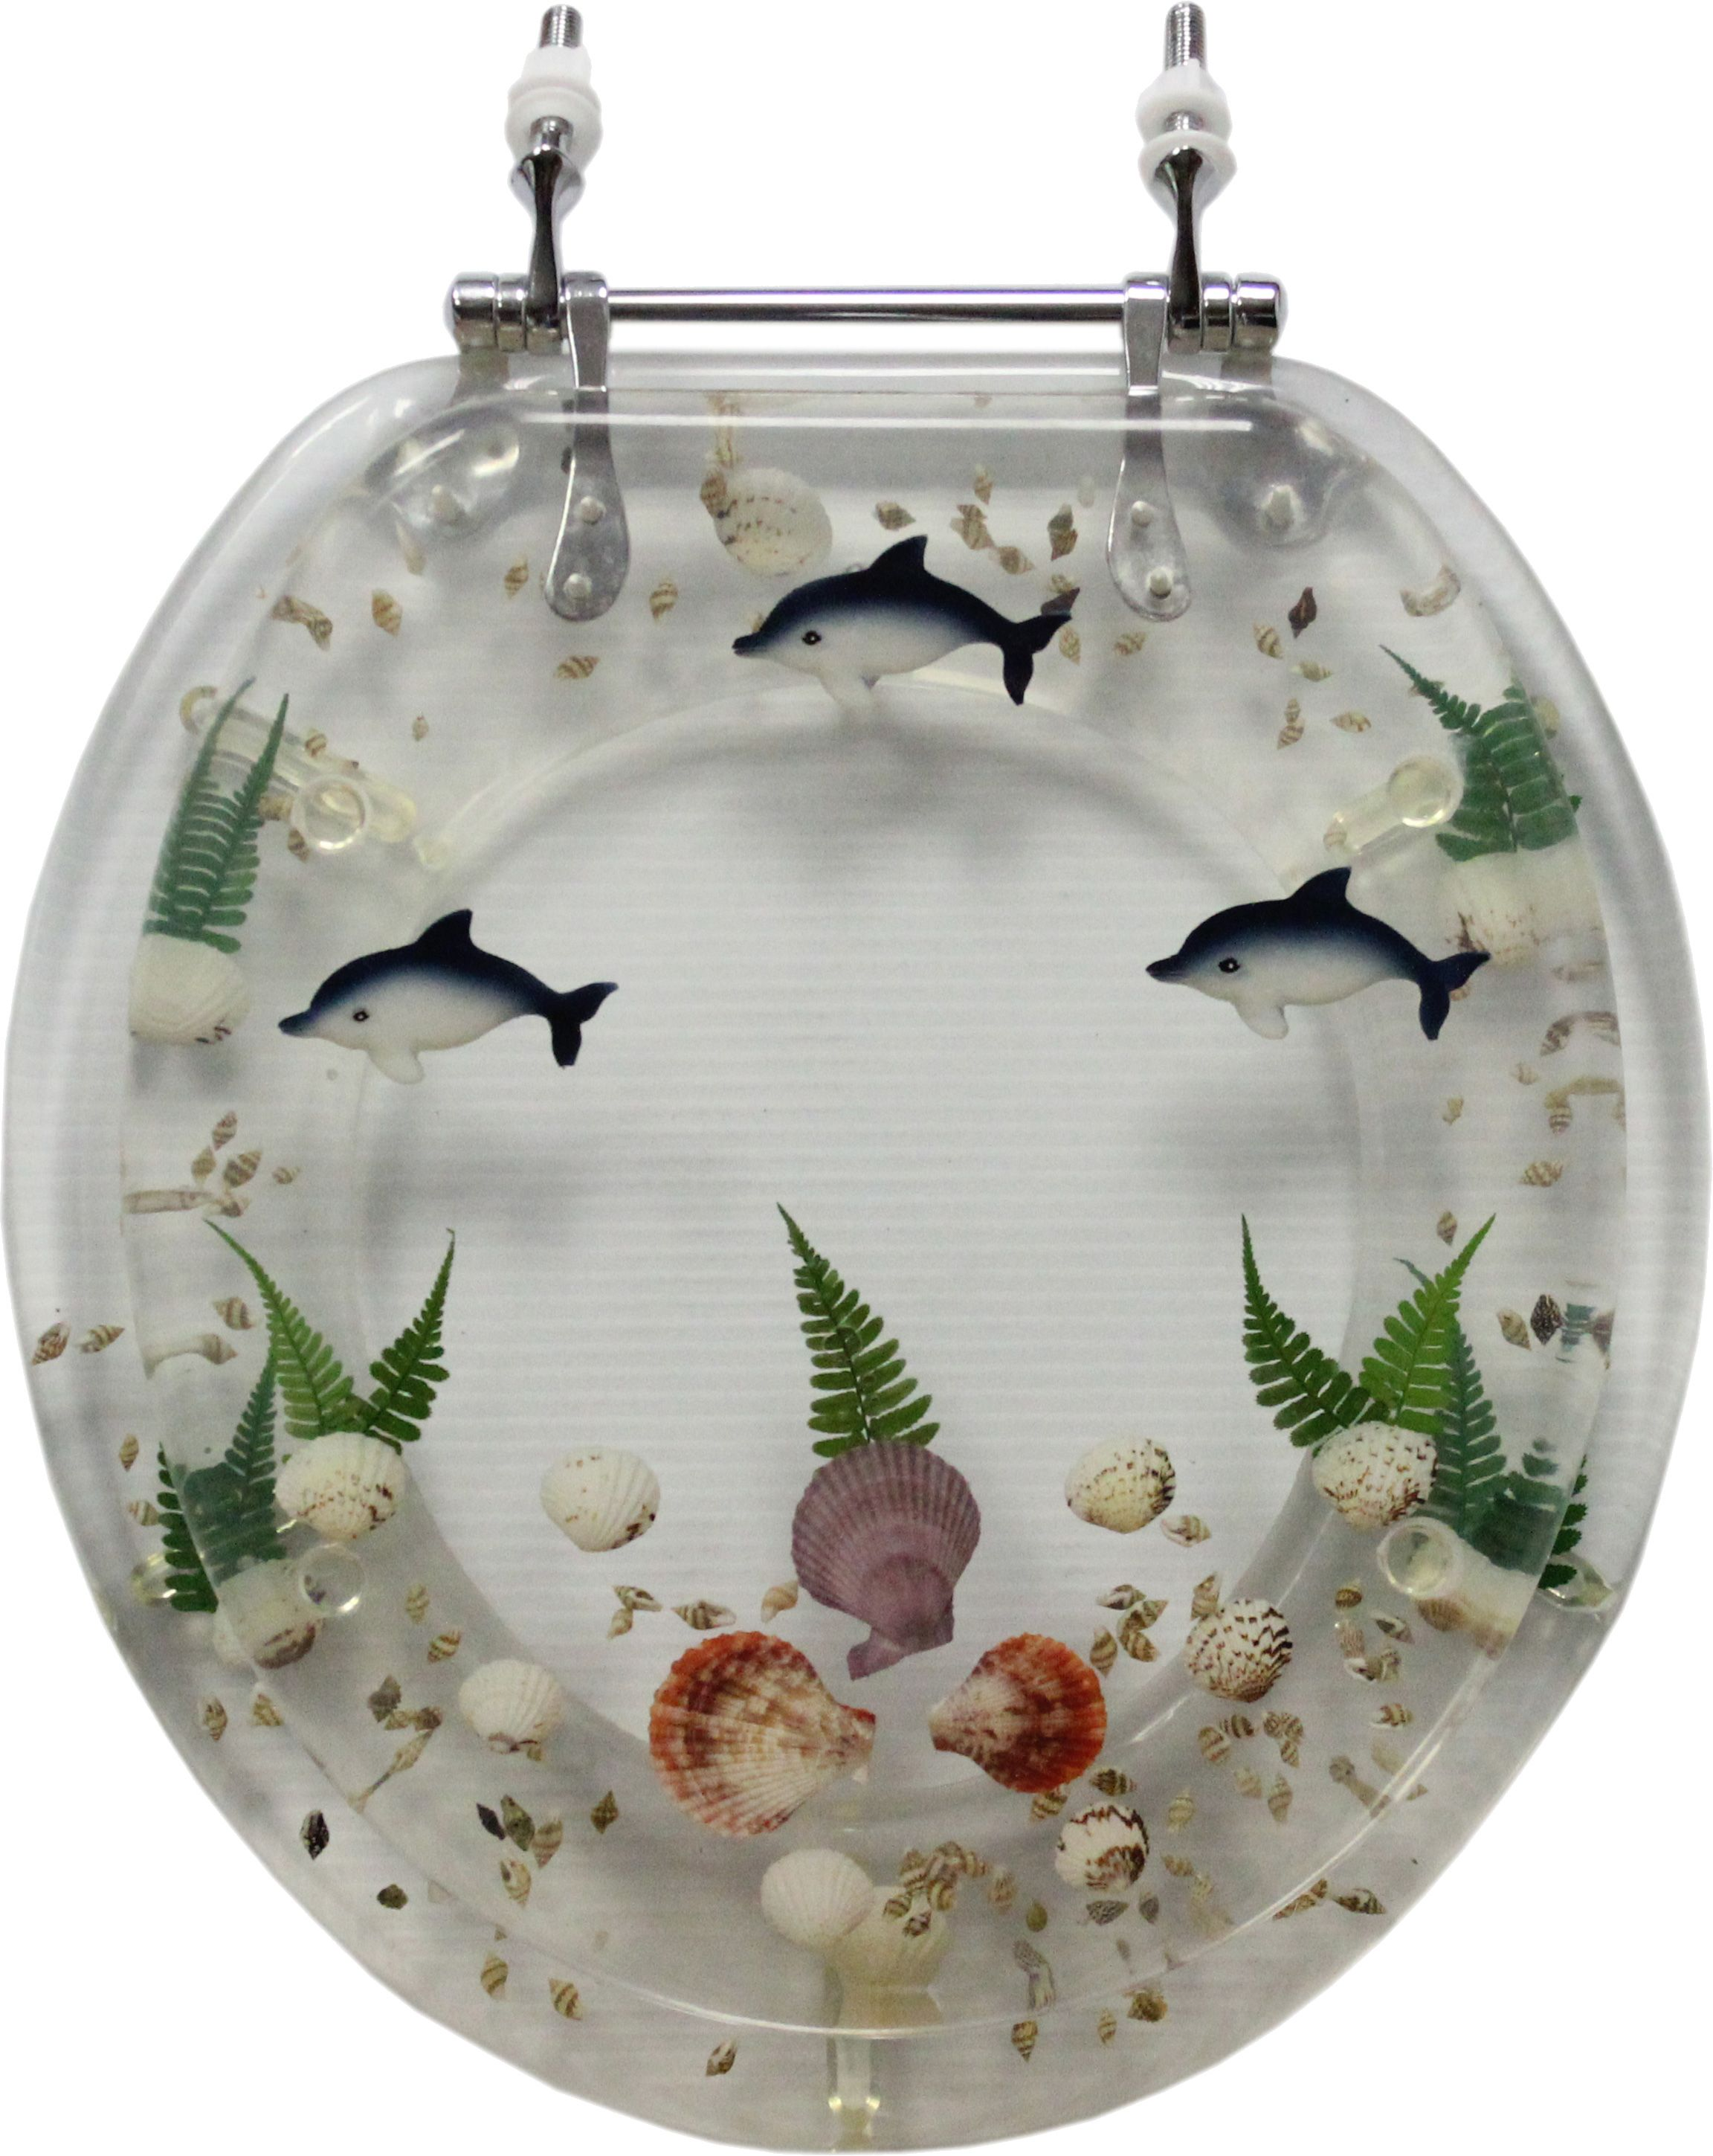 Decorative Toilet Seat